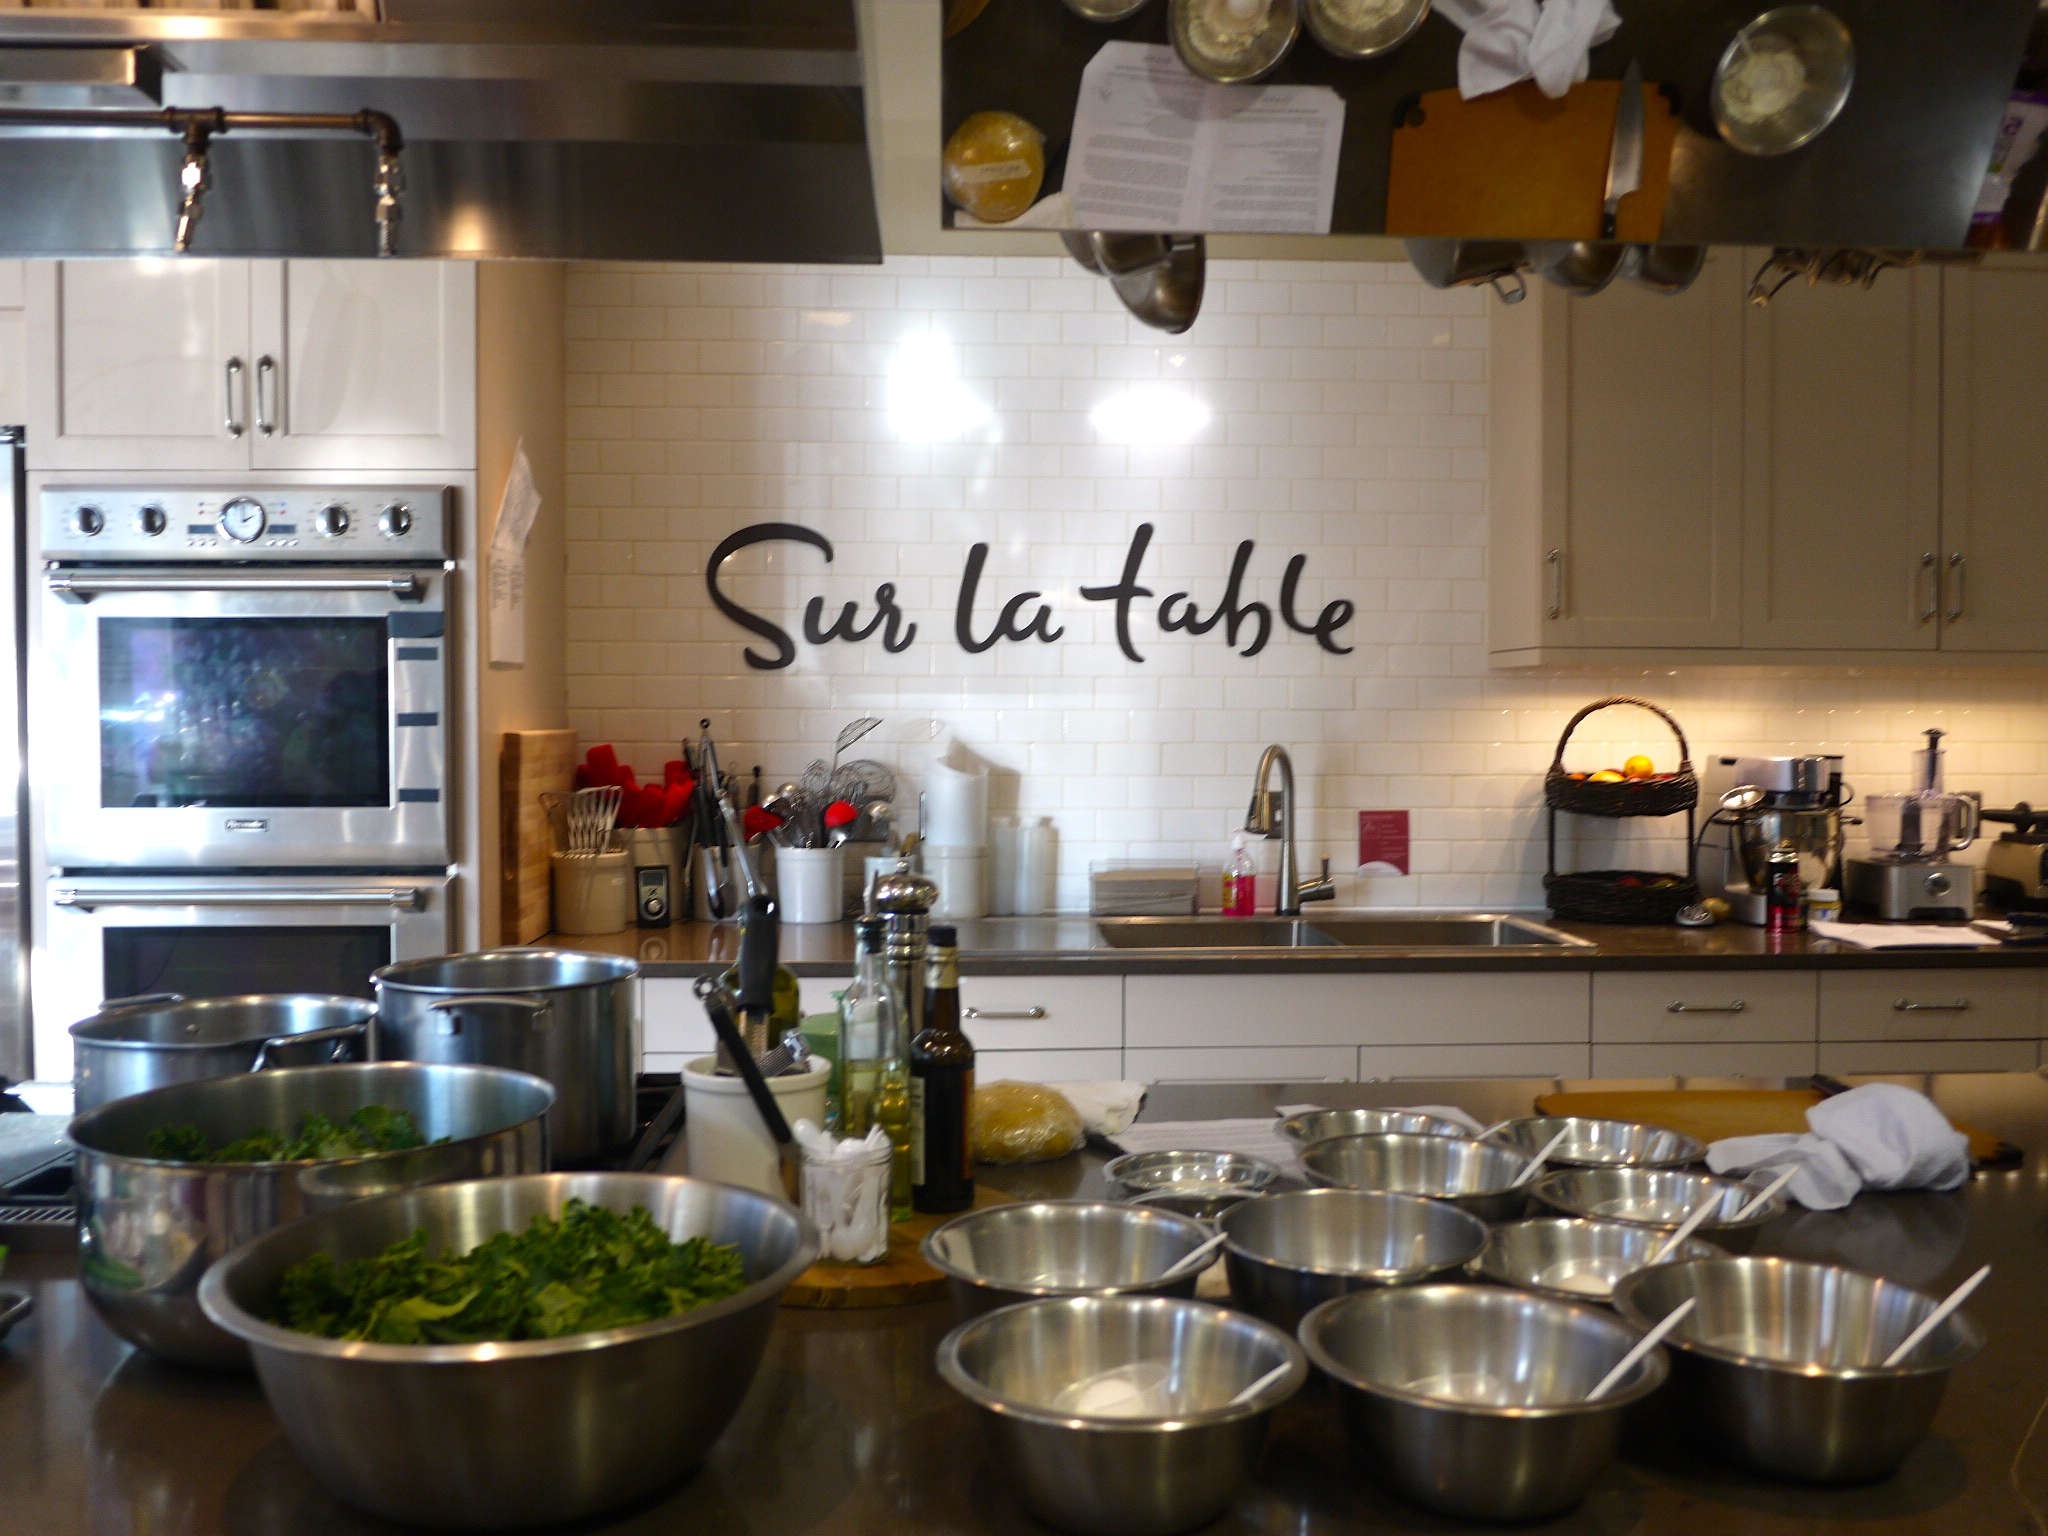 An education staycation in sd 2016 cooking classes for Sur la table food scale